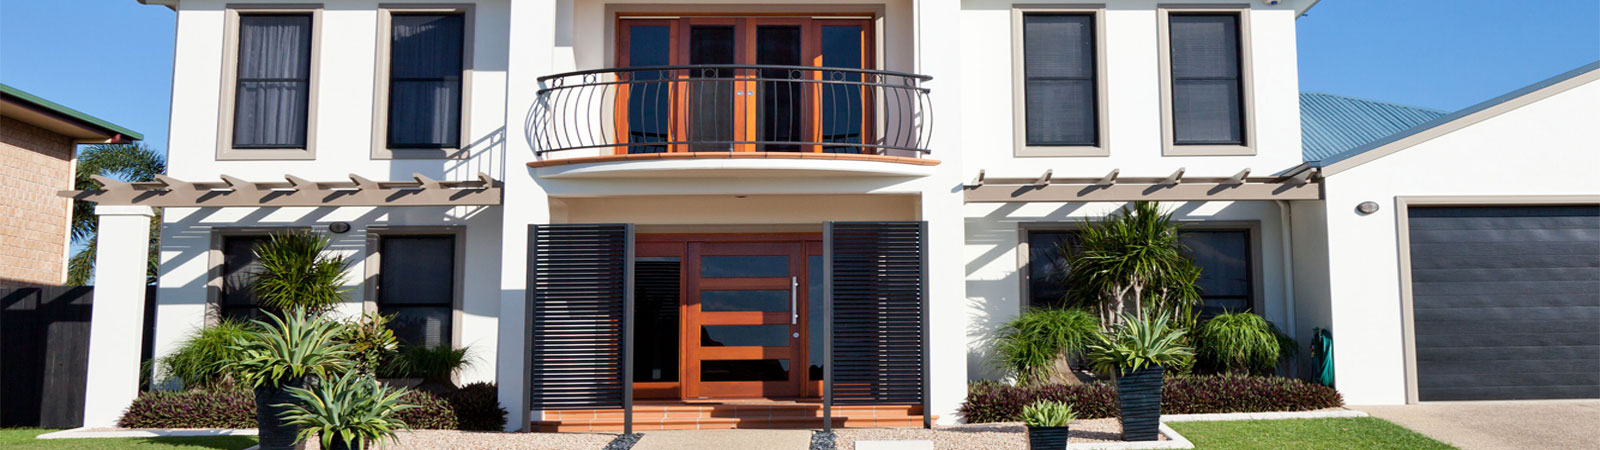 entrance-doors-banner & Contemporary Timber Front Doors I Melbourne I Statesman Doors